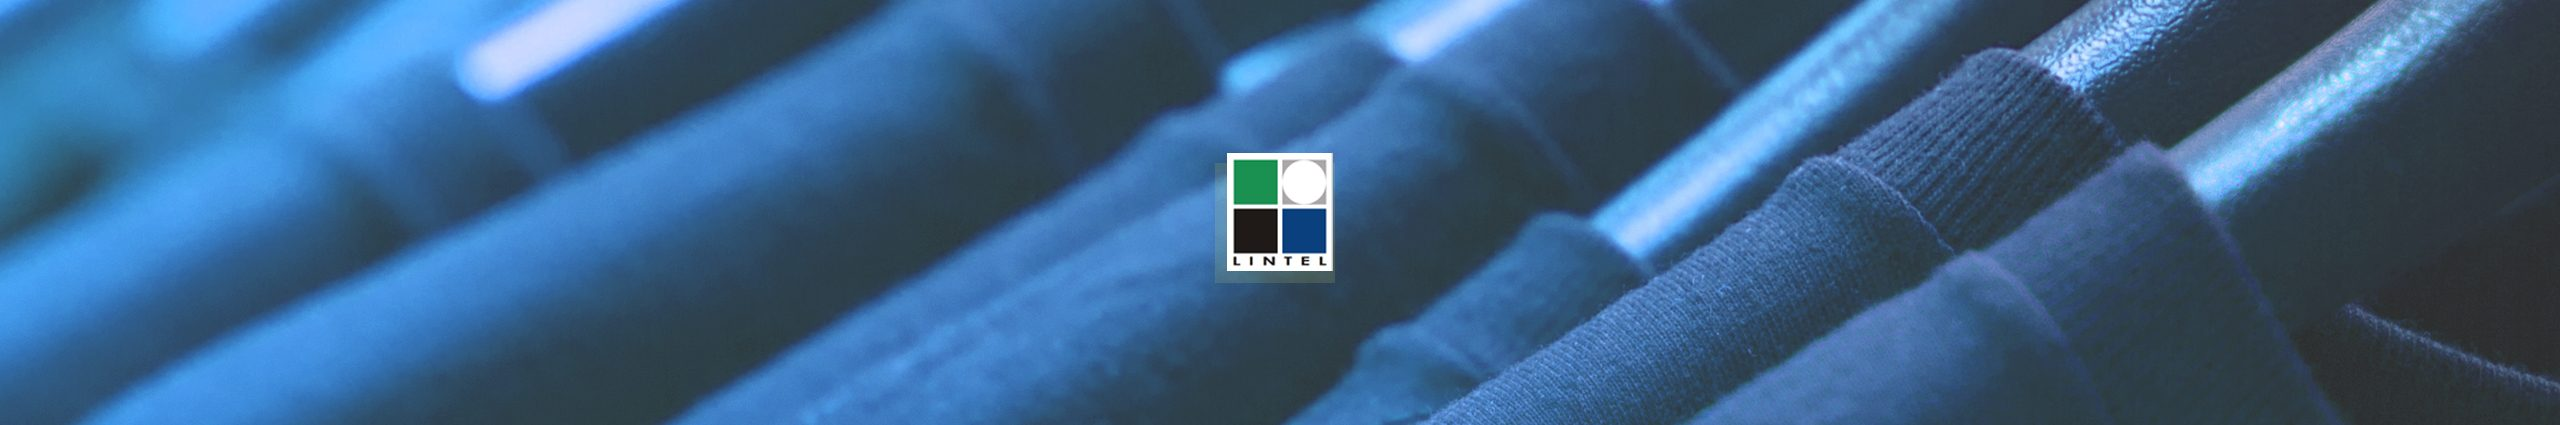 Lintel Investments-Case Study